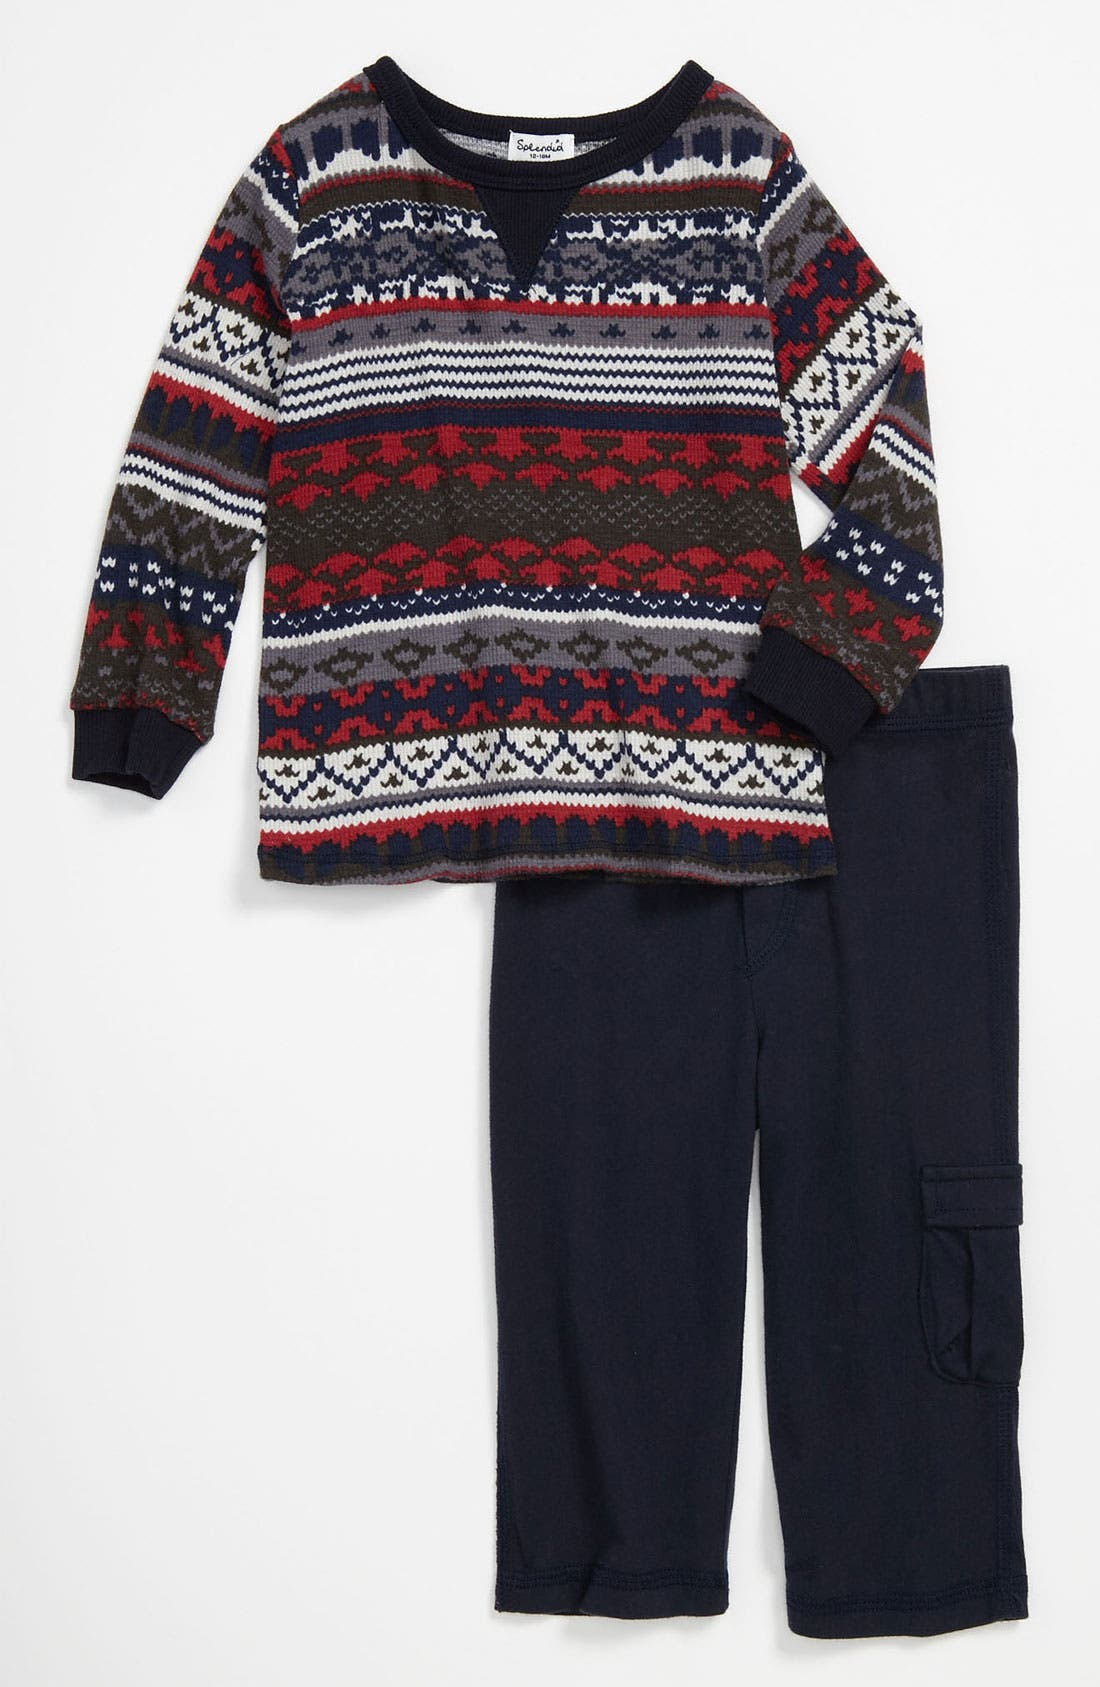 Main Image - Splendid 'Breckenridge' Thermal Top & Pants (Infant)